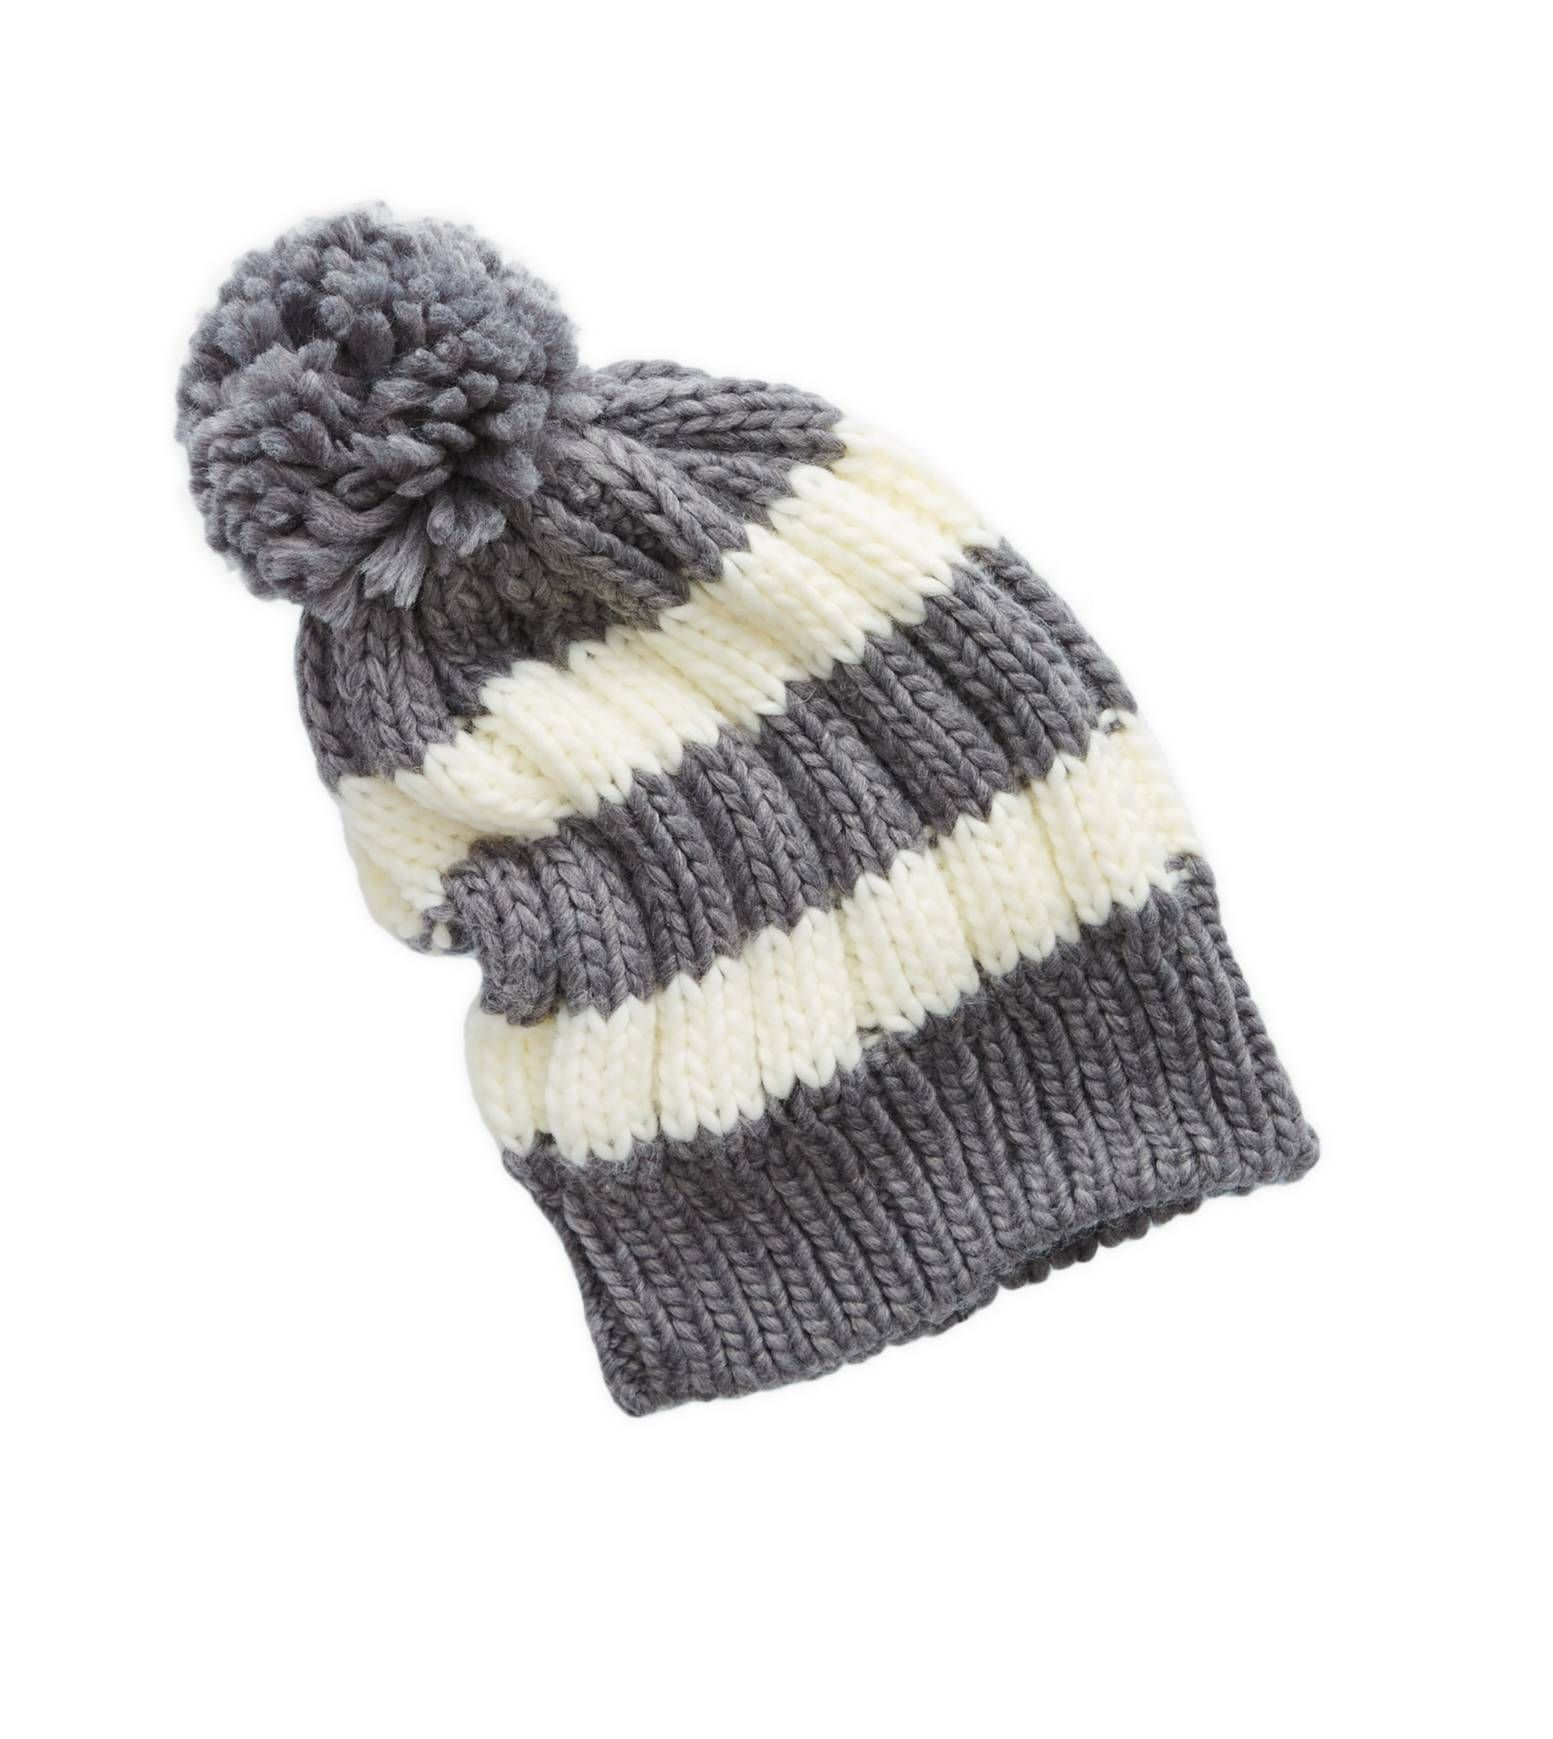 ac6e46c98 Dark Heather Grey Aerie Striped Pom Beanie - Top it off! #Aerie ...